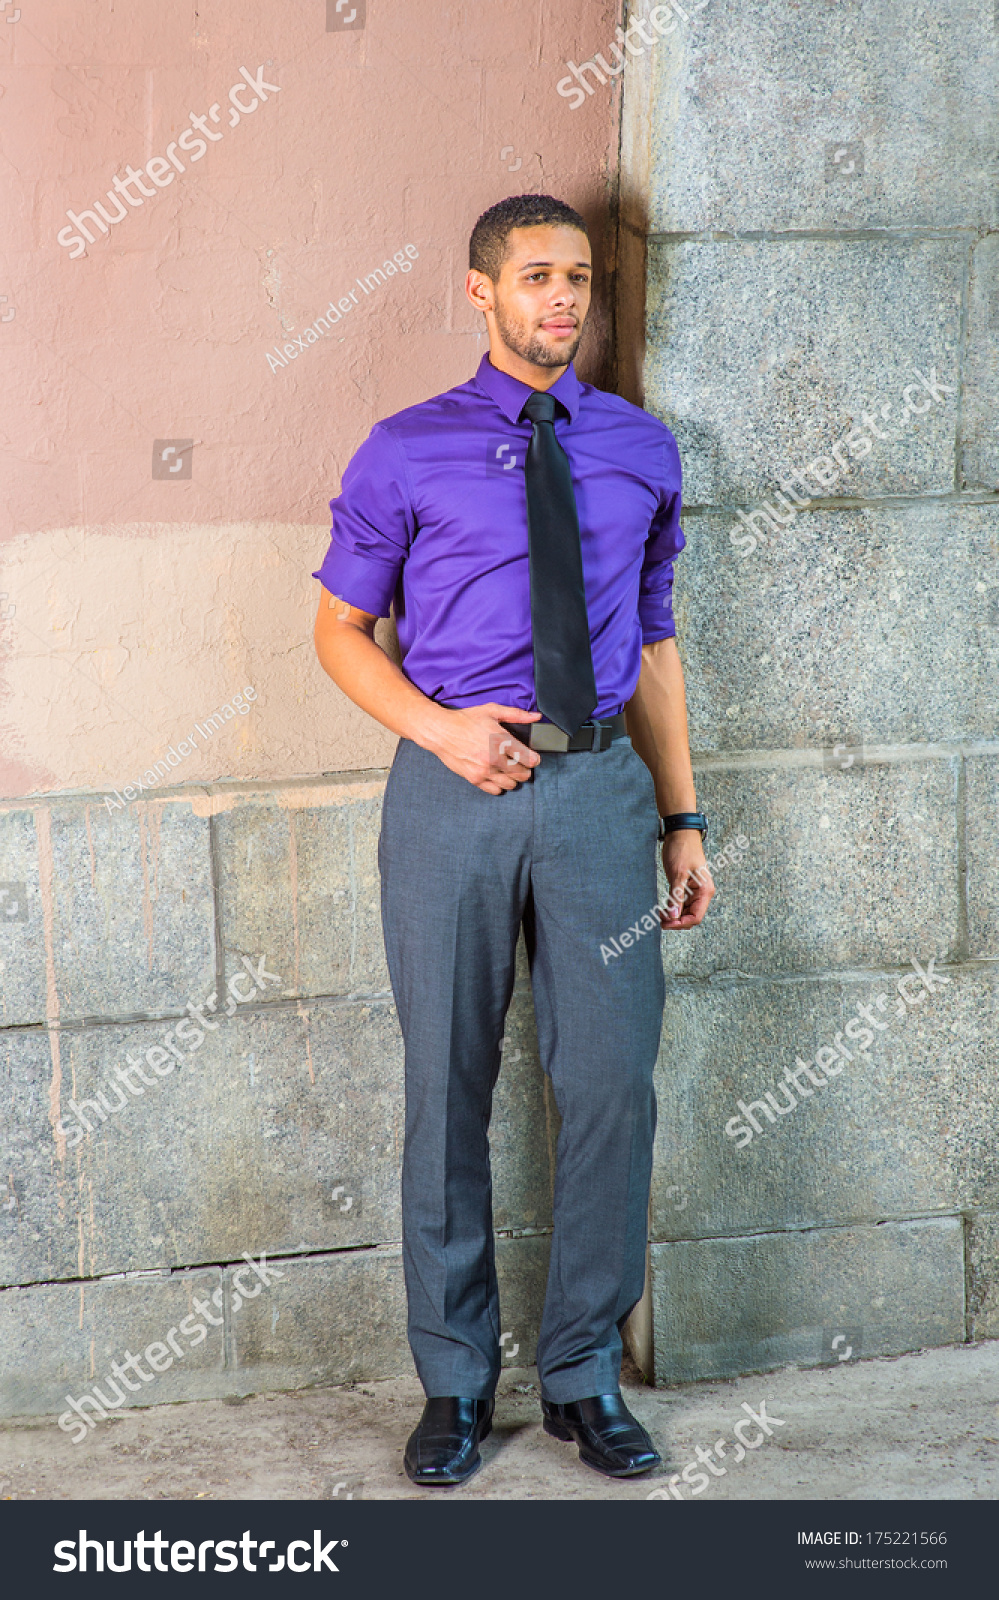 haircuts for adults royalty free dressing in a purple shirt gray 3942